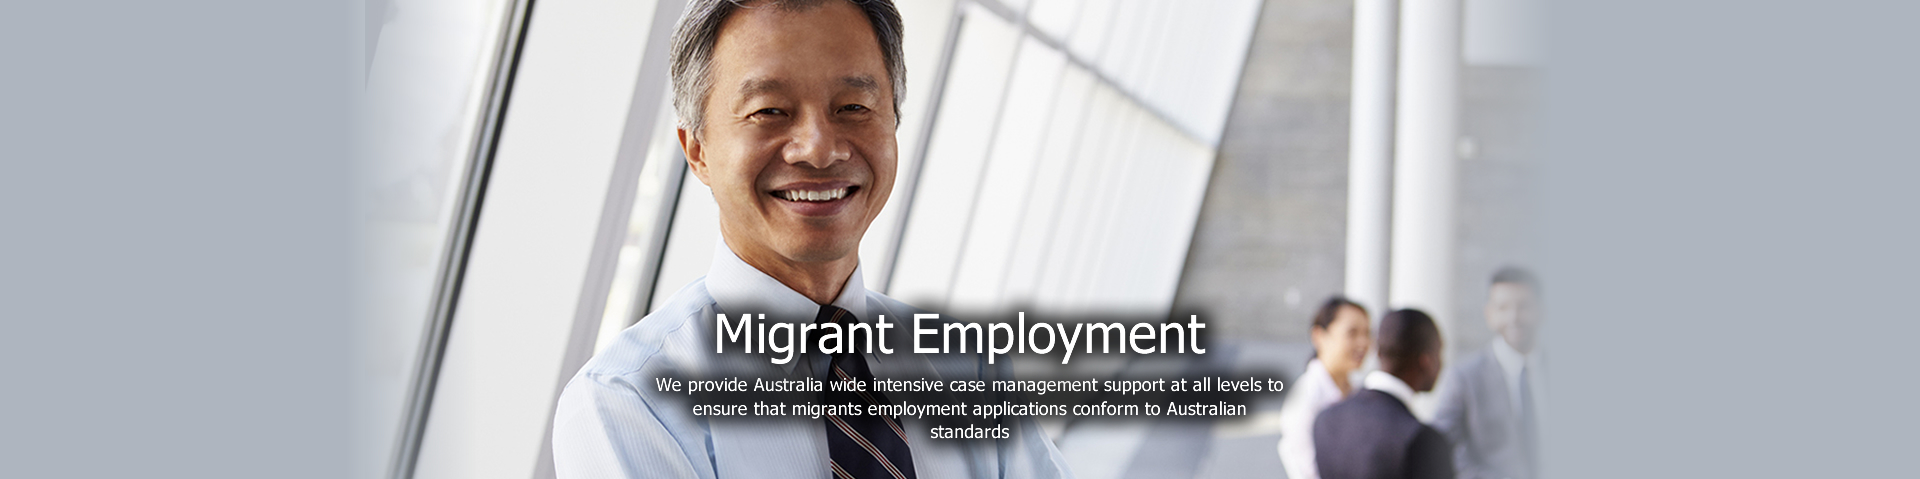 migrant employment assistance